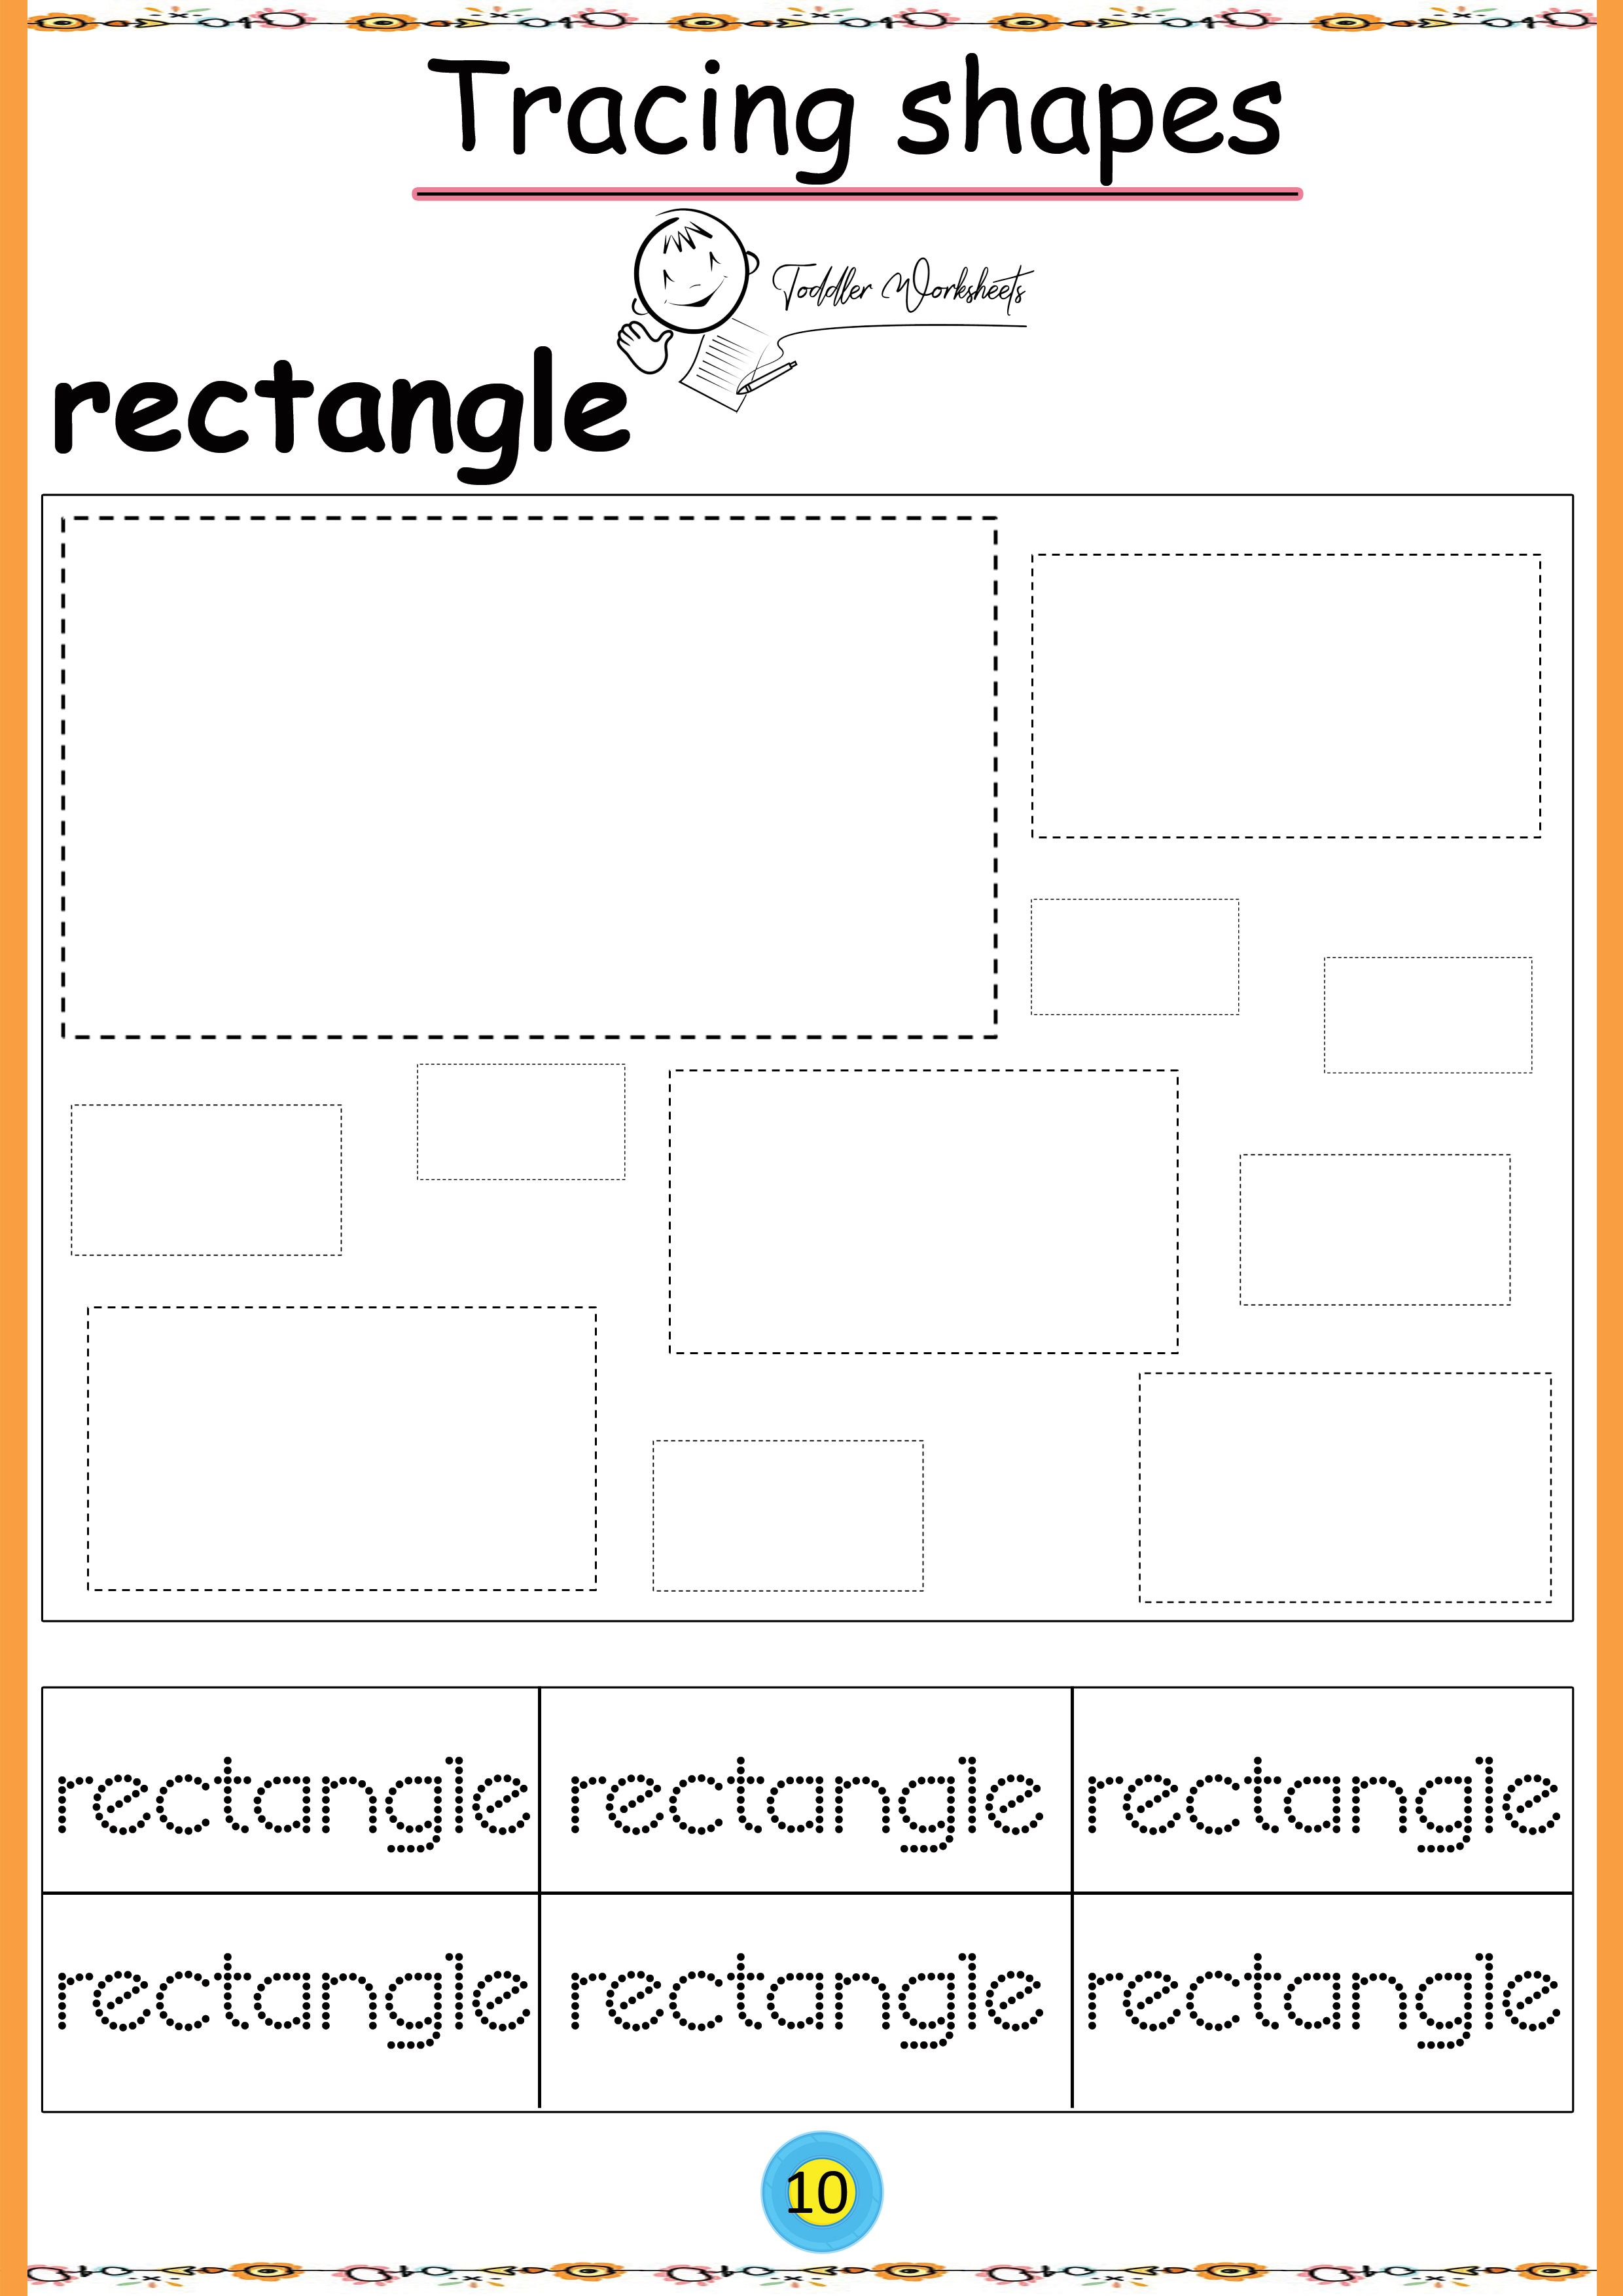 Free Preschool Shapes Worksheets With Images